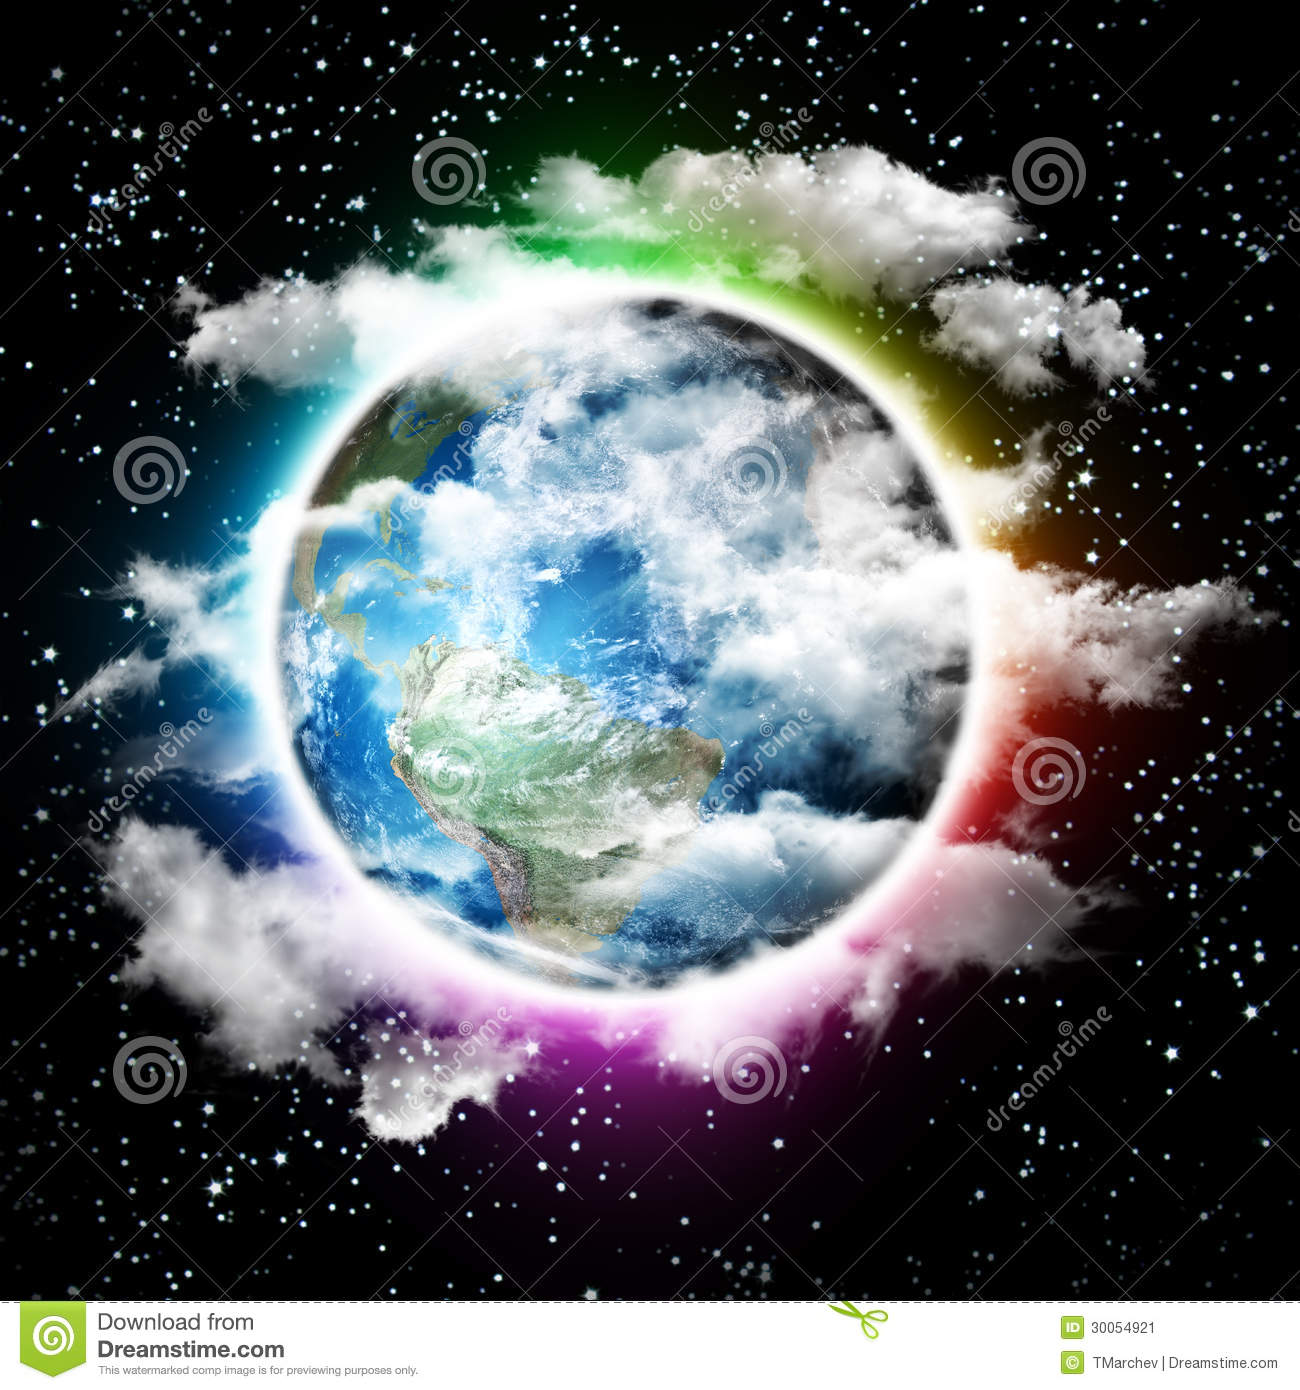 https://thumbs.dreamstime.com/z/d-illustration-rainbow-planet-earth-soft-clouds-rainbow-atmosphere-hight-quality-render-30054921.jpg